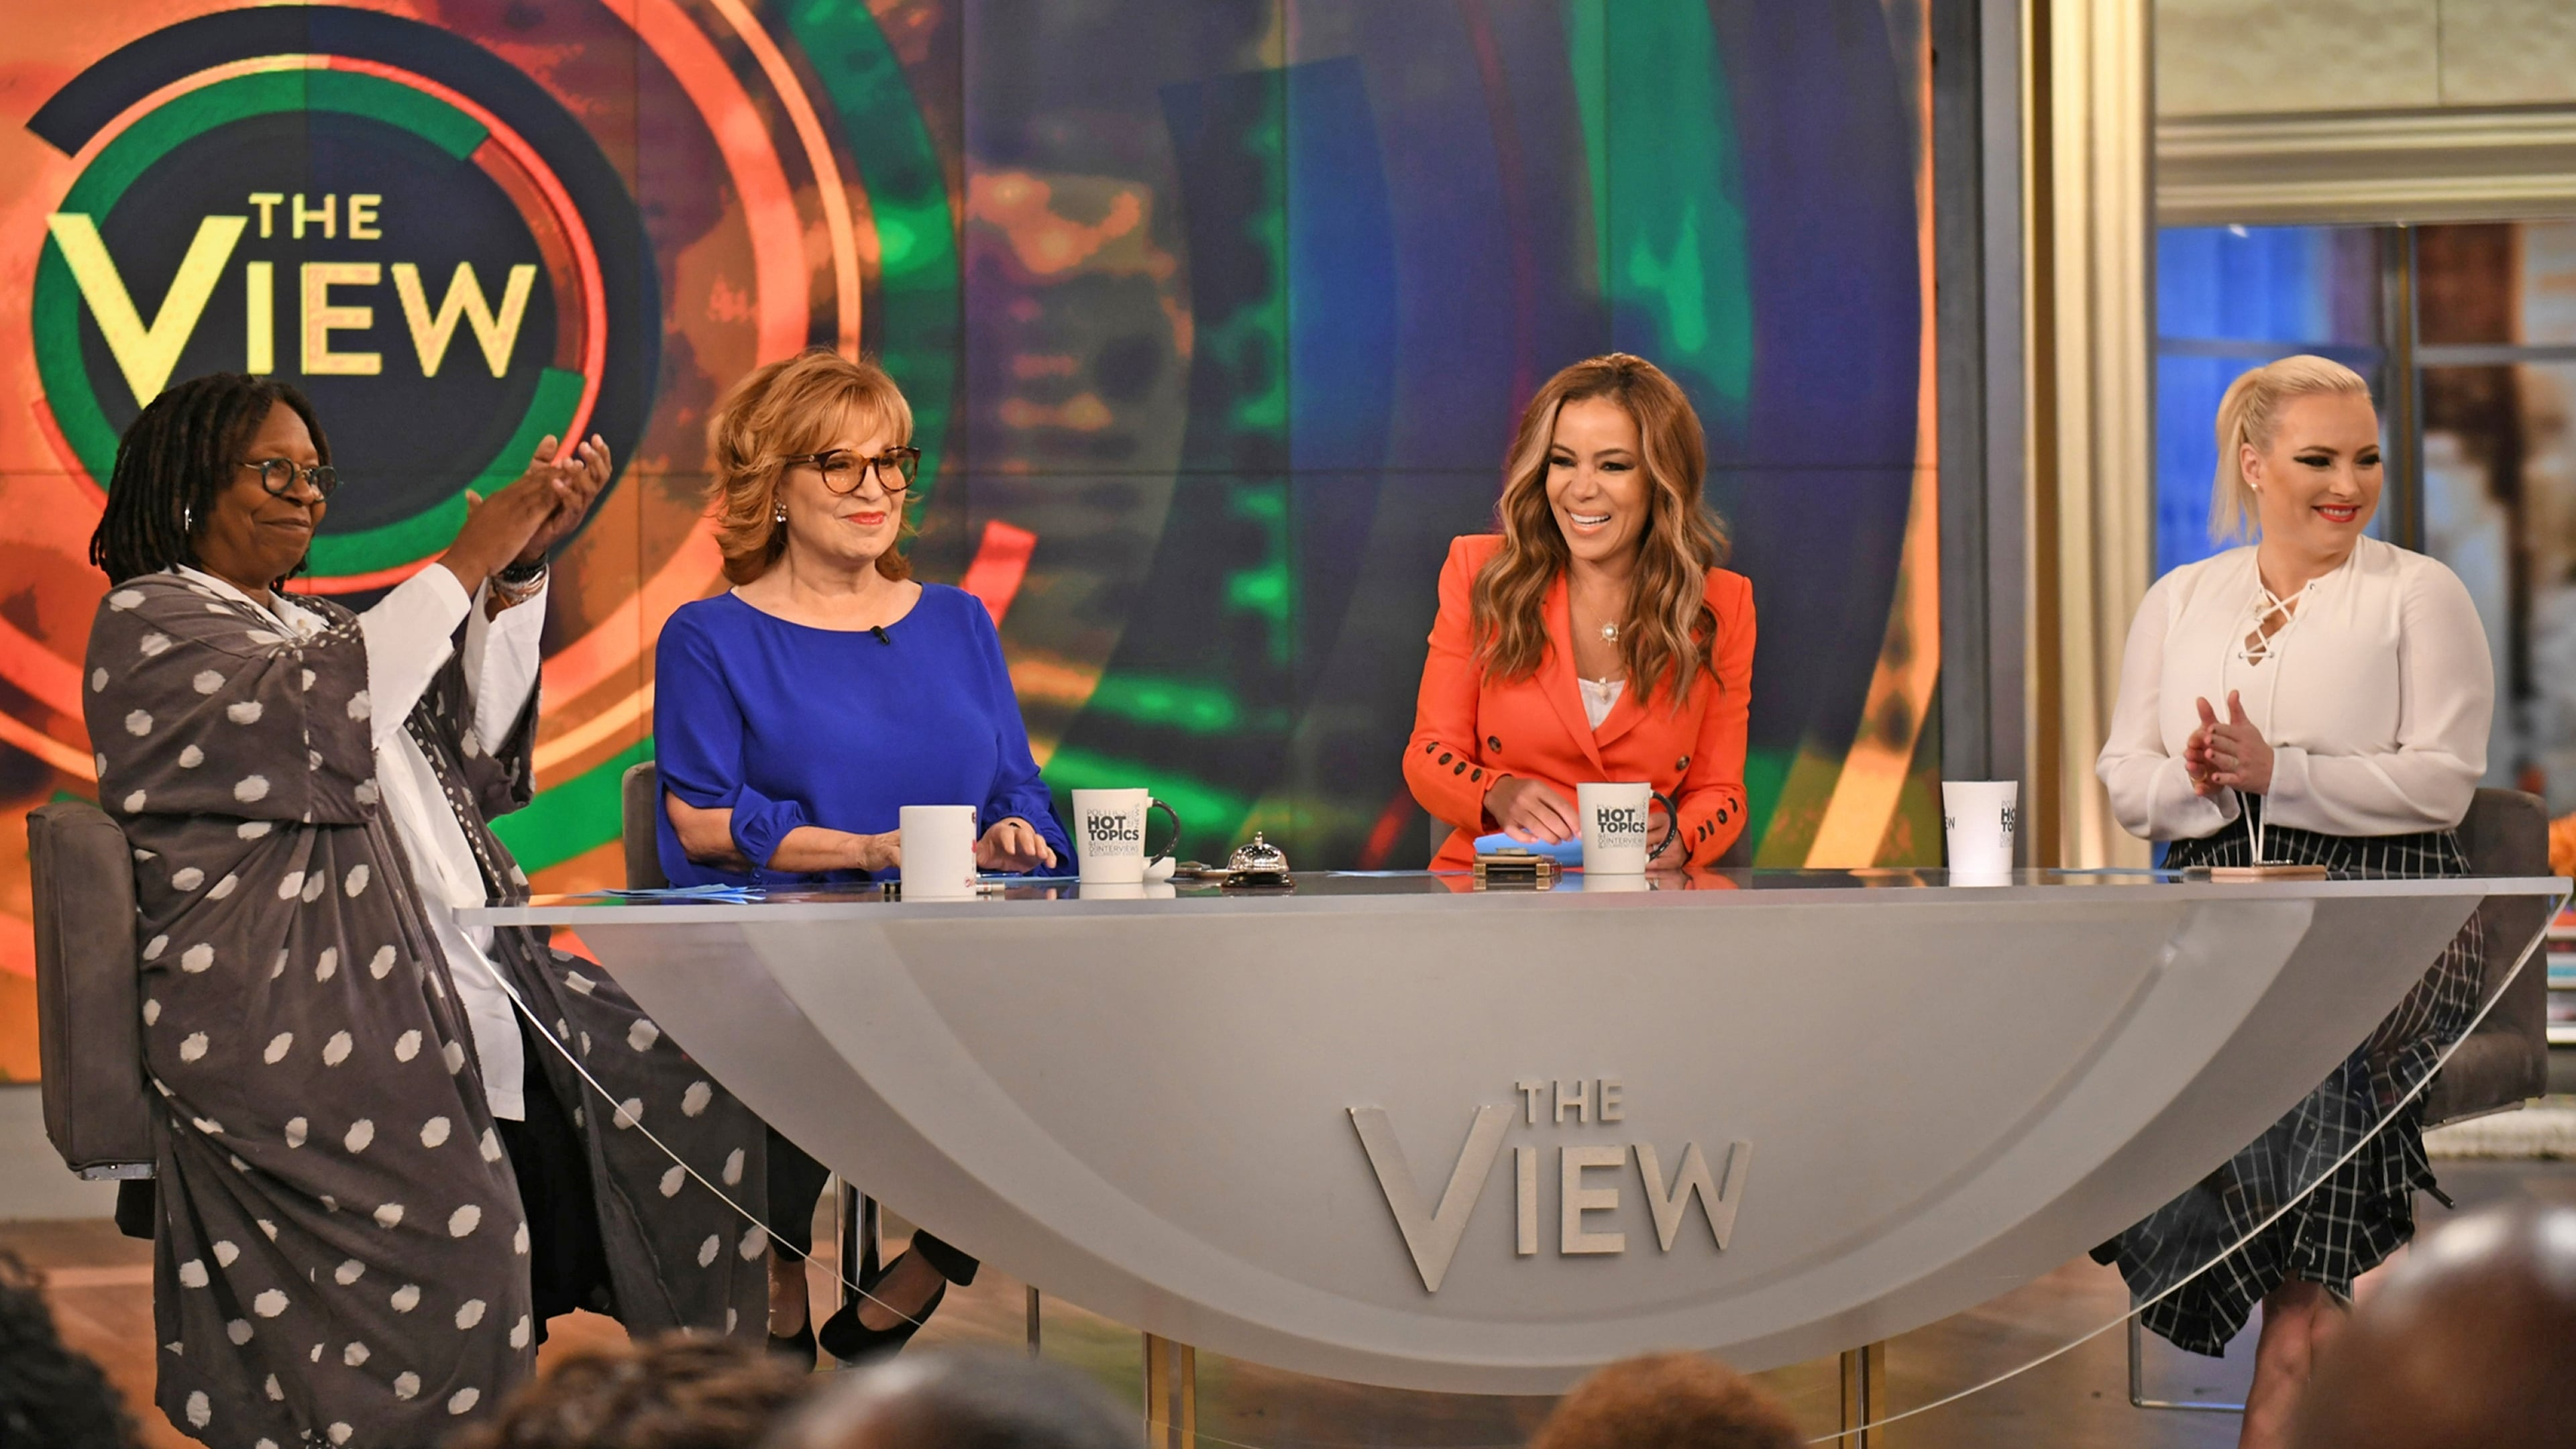 The View - Season 3 Episode 214 : Season 3, Episode 214